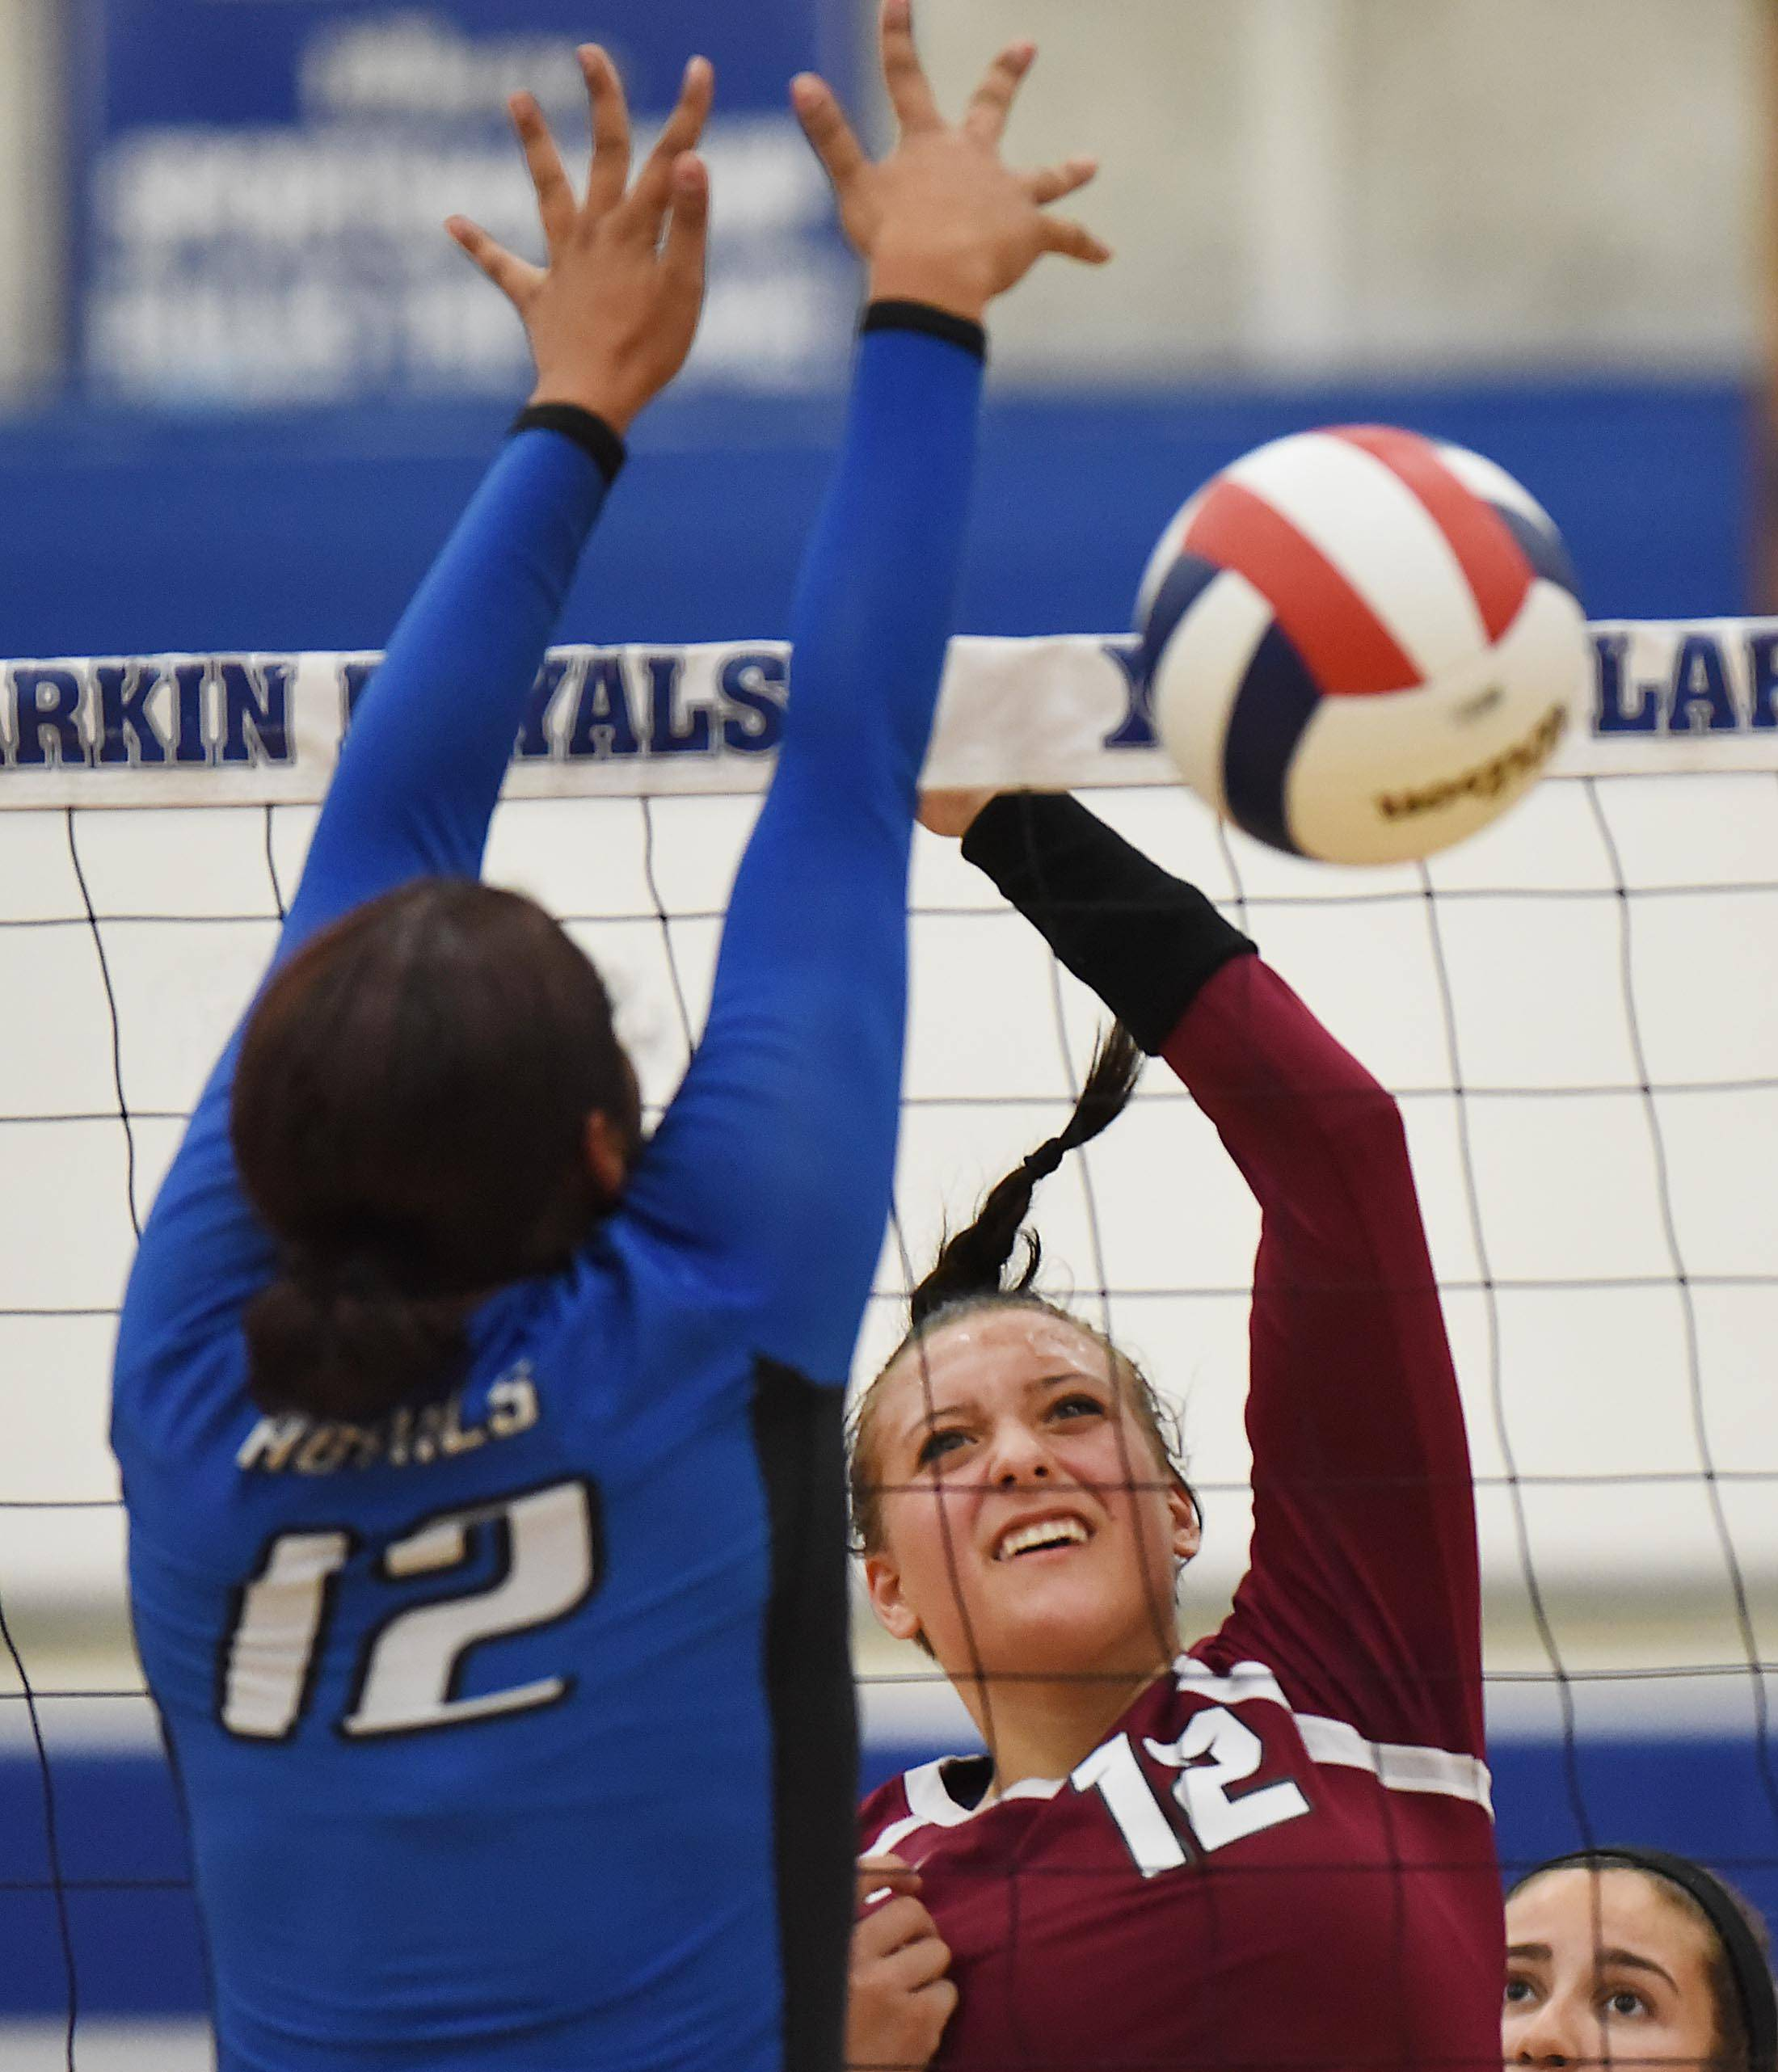 Elgin's Inga Suceska scores against Larkin's Jaelihn Norman Tuesday at Larkin High School in Elgin.